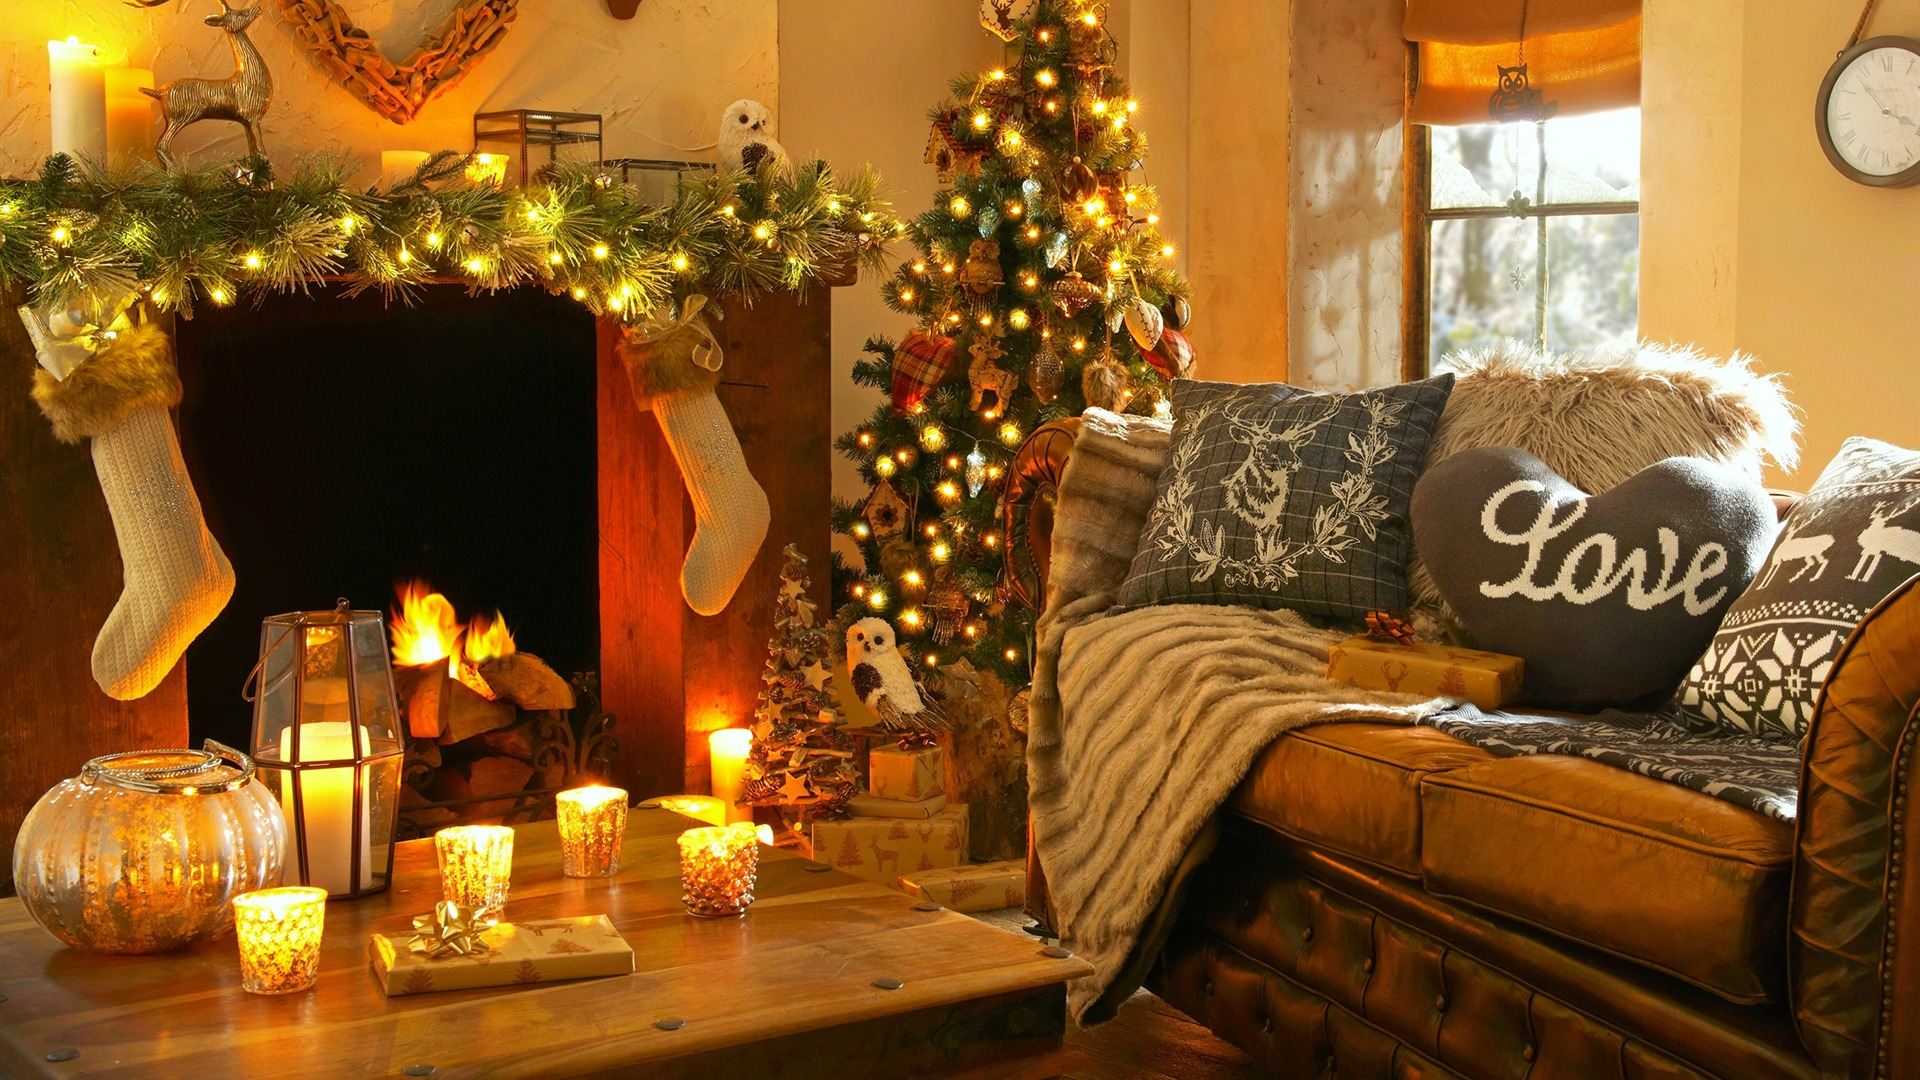 Christmas Day House Interior Decoration Background